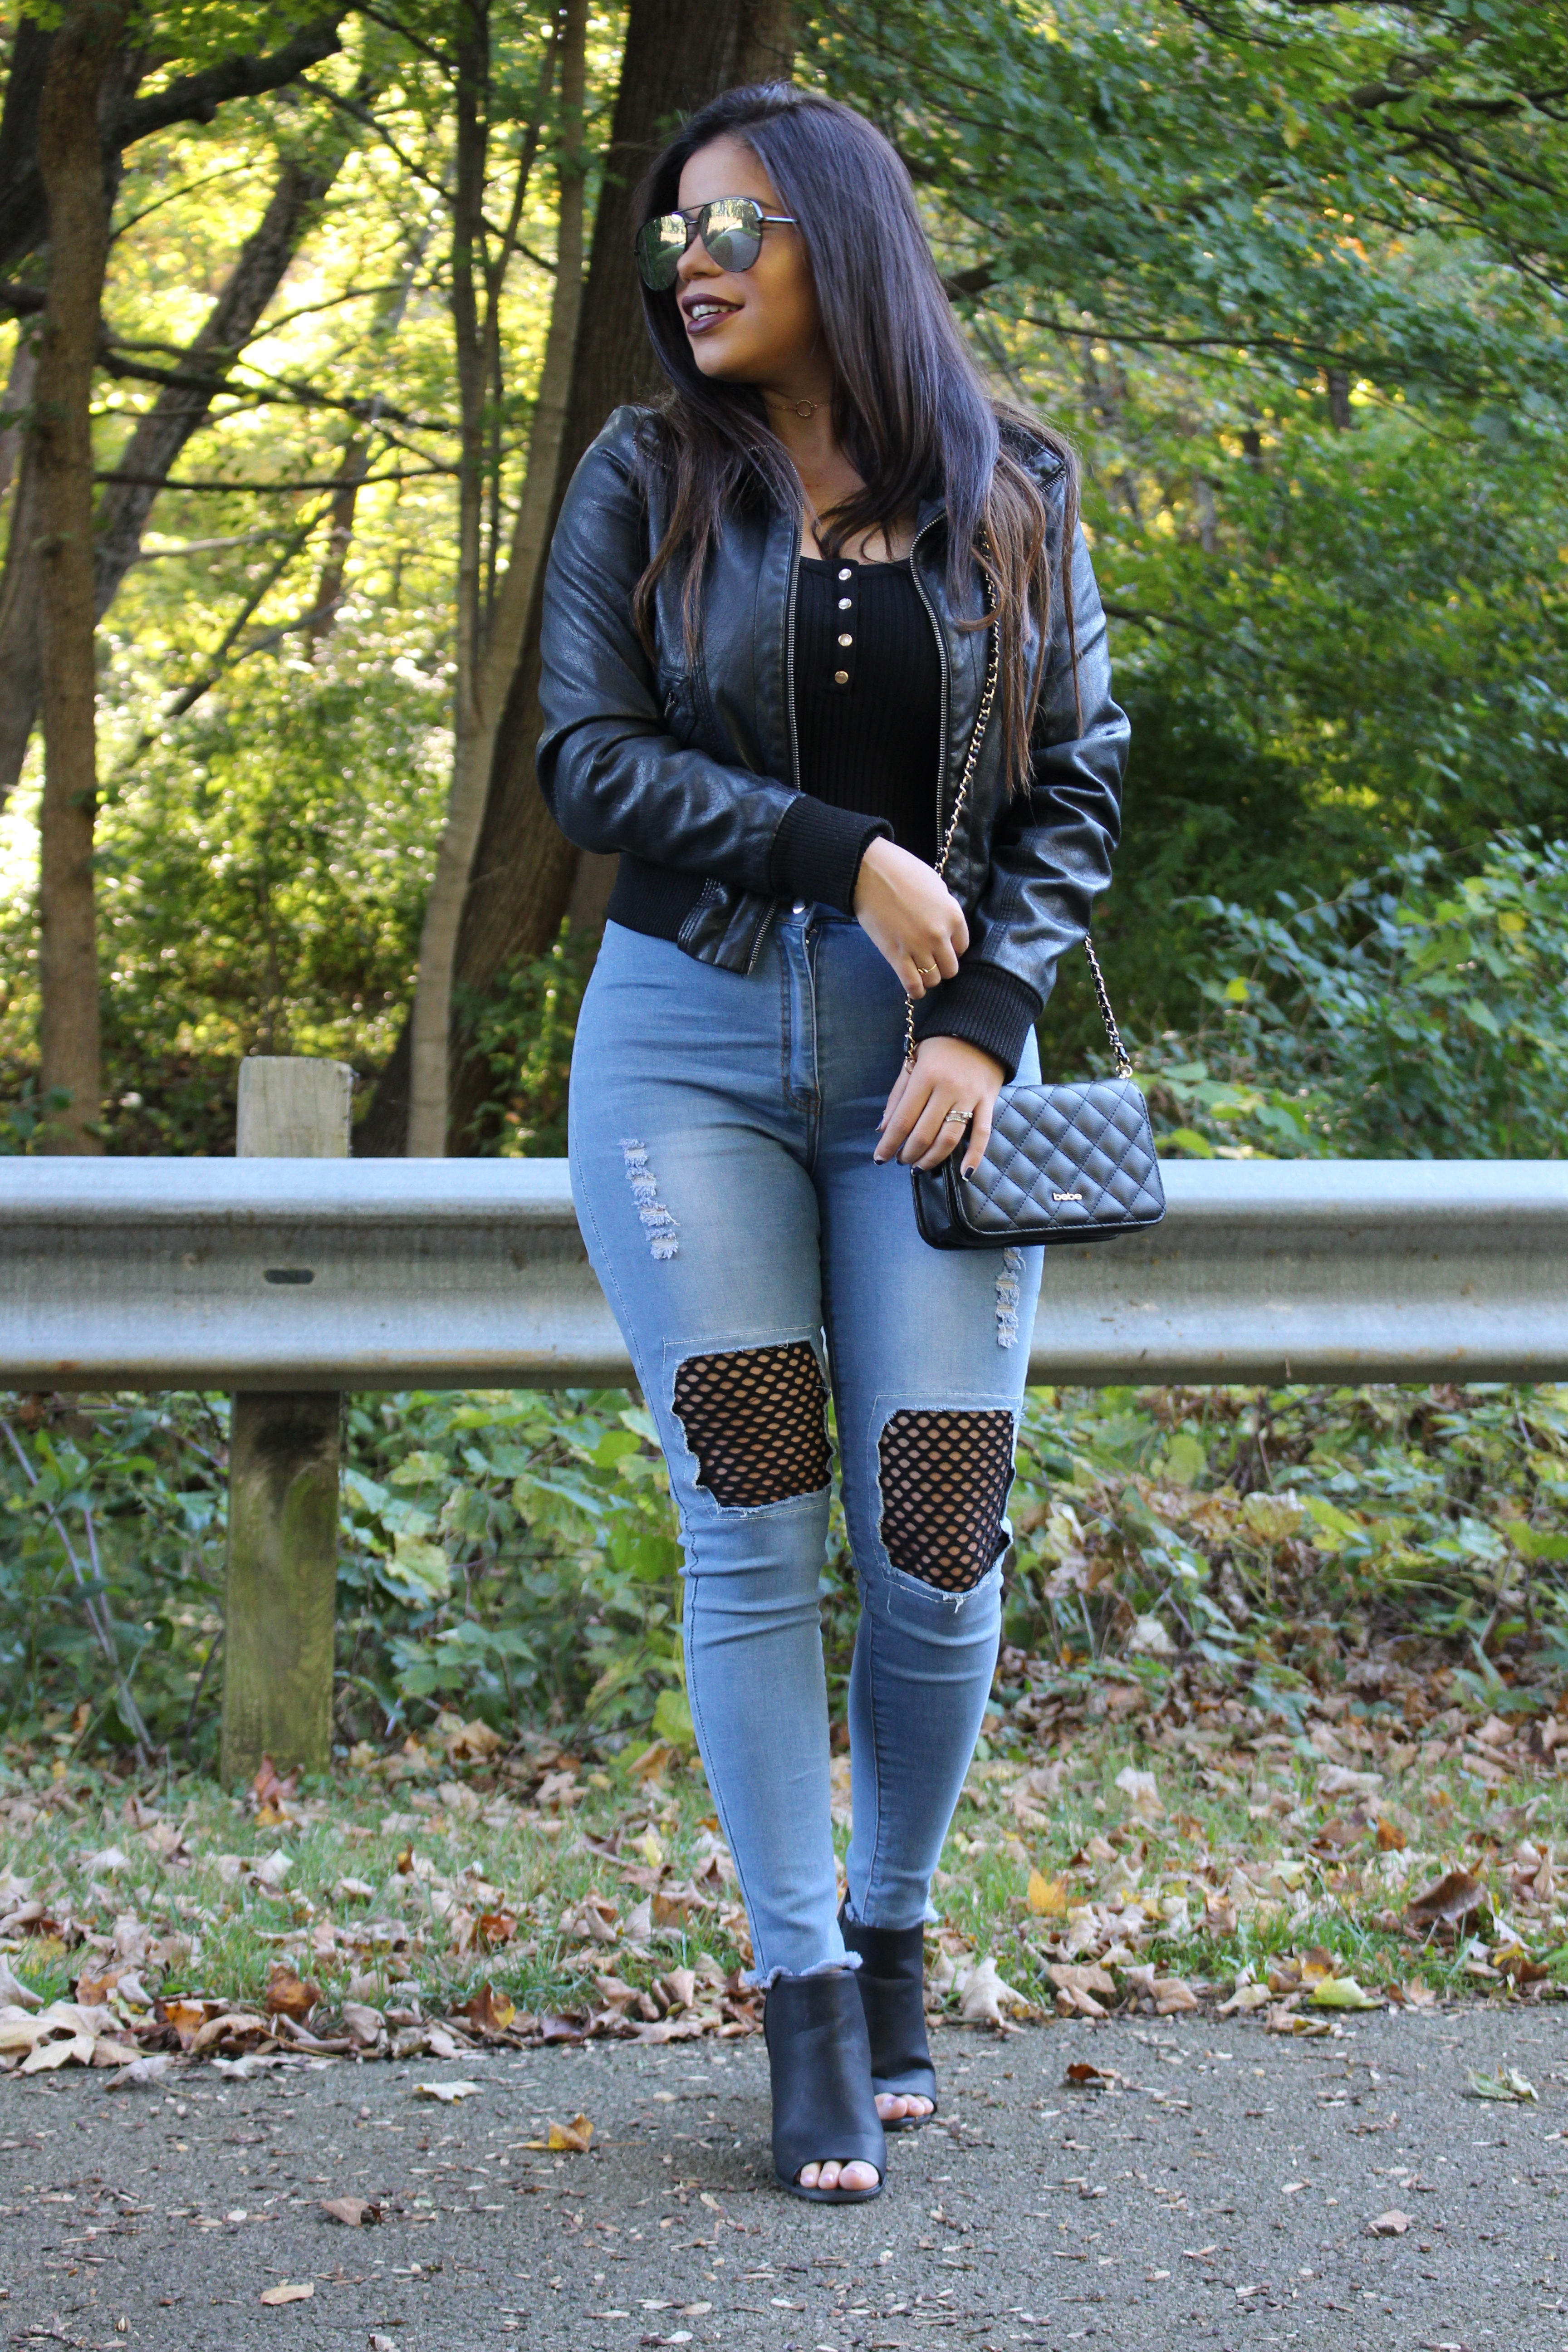 hot miami styles jeans rocker outfit jeans details ootd ootn bebe handbag charlotte russe choker quay australia high key silver black shades casual by alejandra avila tufashionpetite